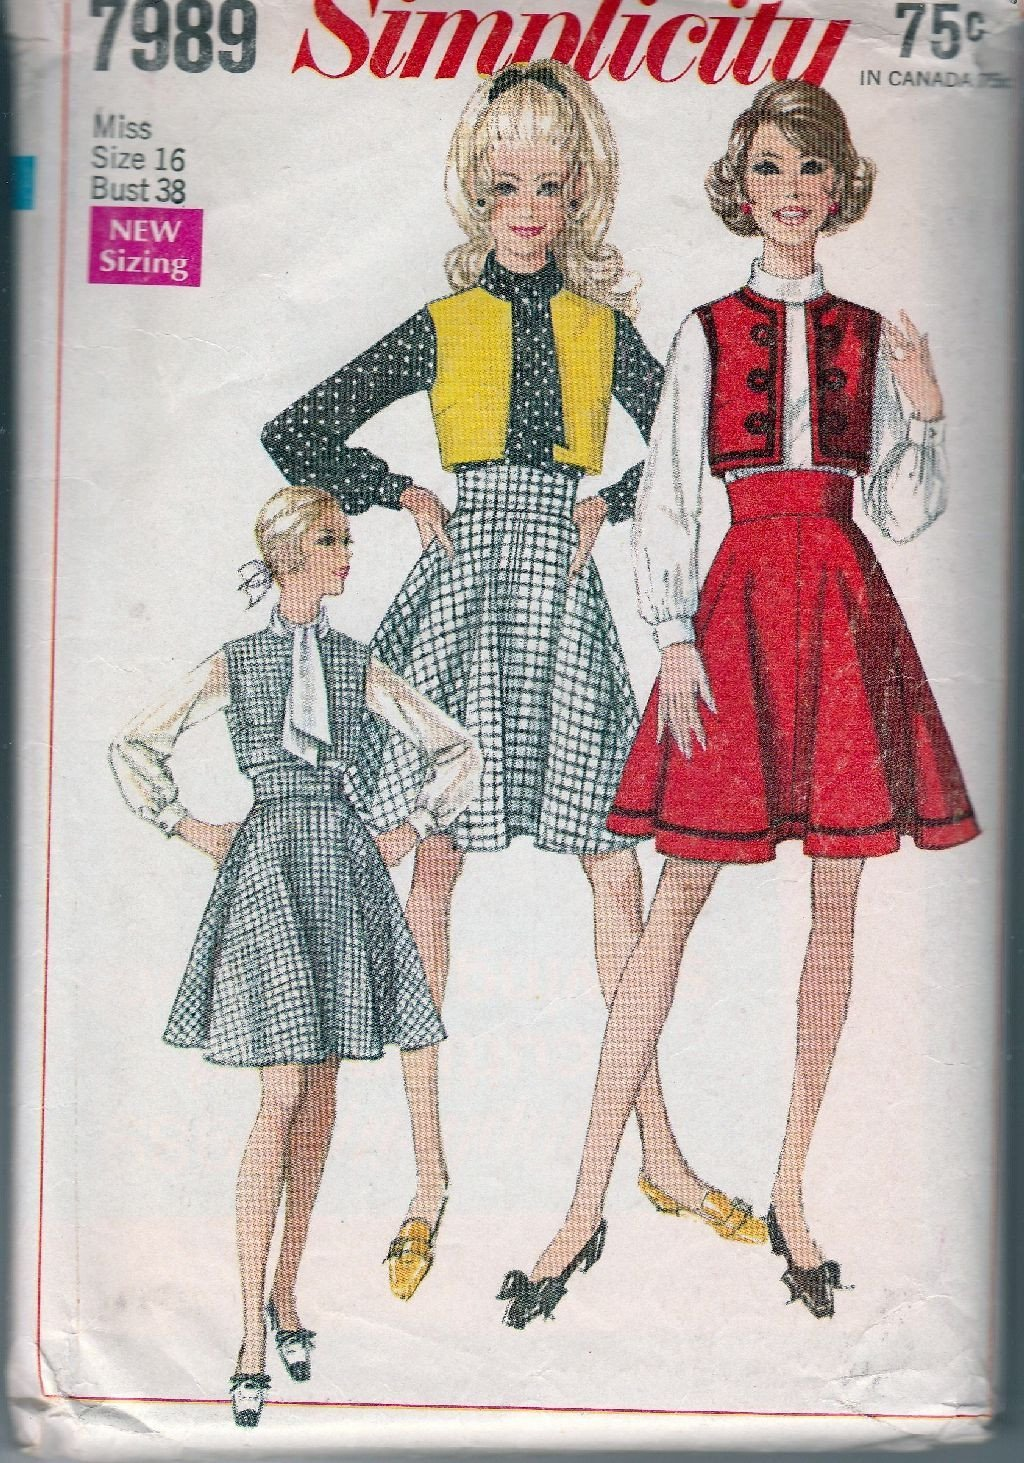 Simplicity 7989 Ladies Bolero Jacket Skirt Blouse Vintage Sewing Pattern 1960's - VintageStitching - Vintage Sewing Patterns